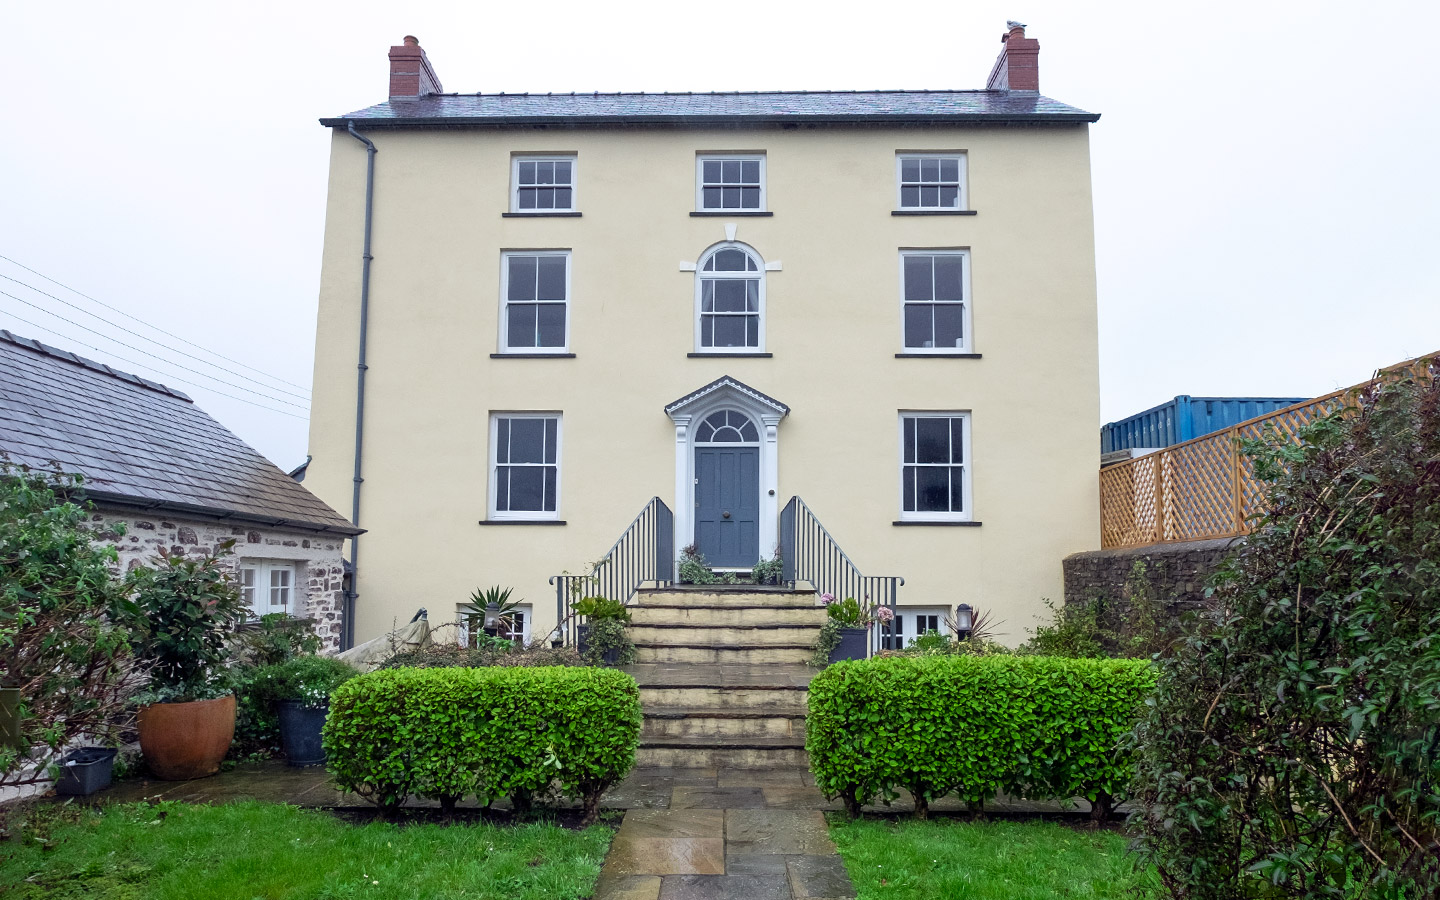 Seaview – Dylan Thomas' house for rent in Laugharne, South Wales